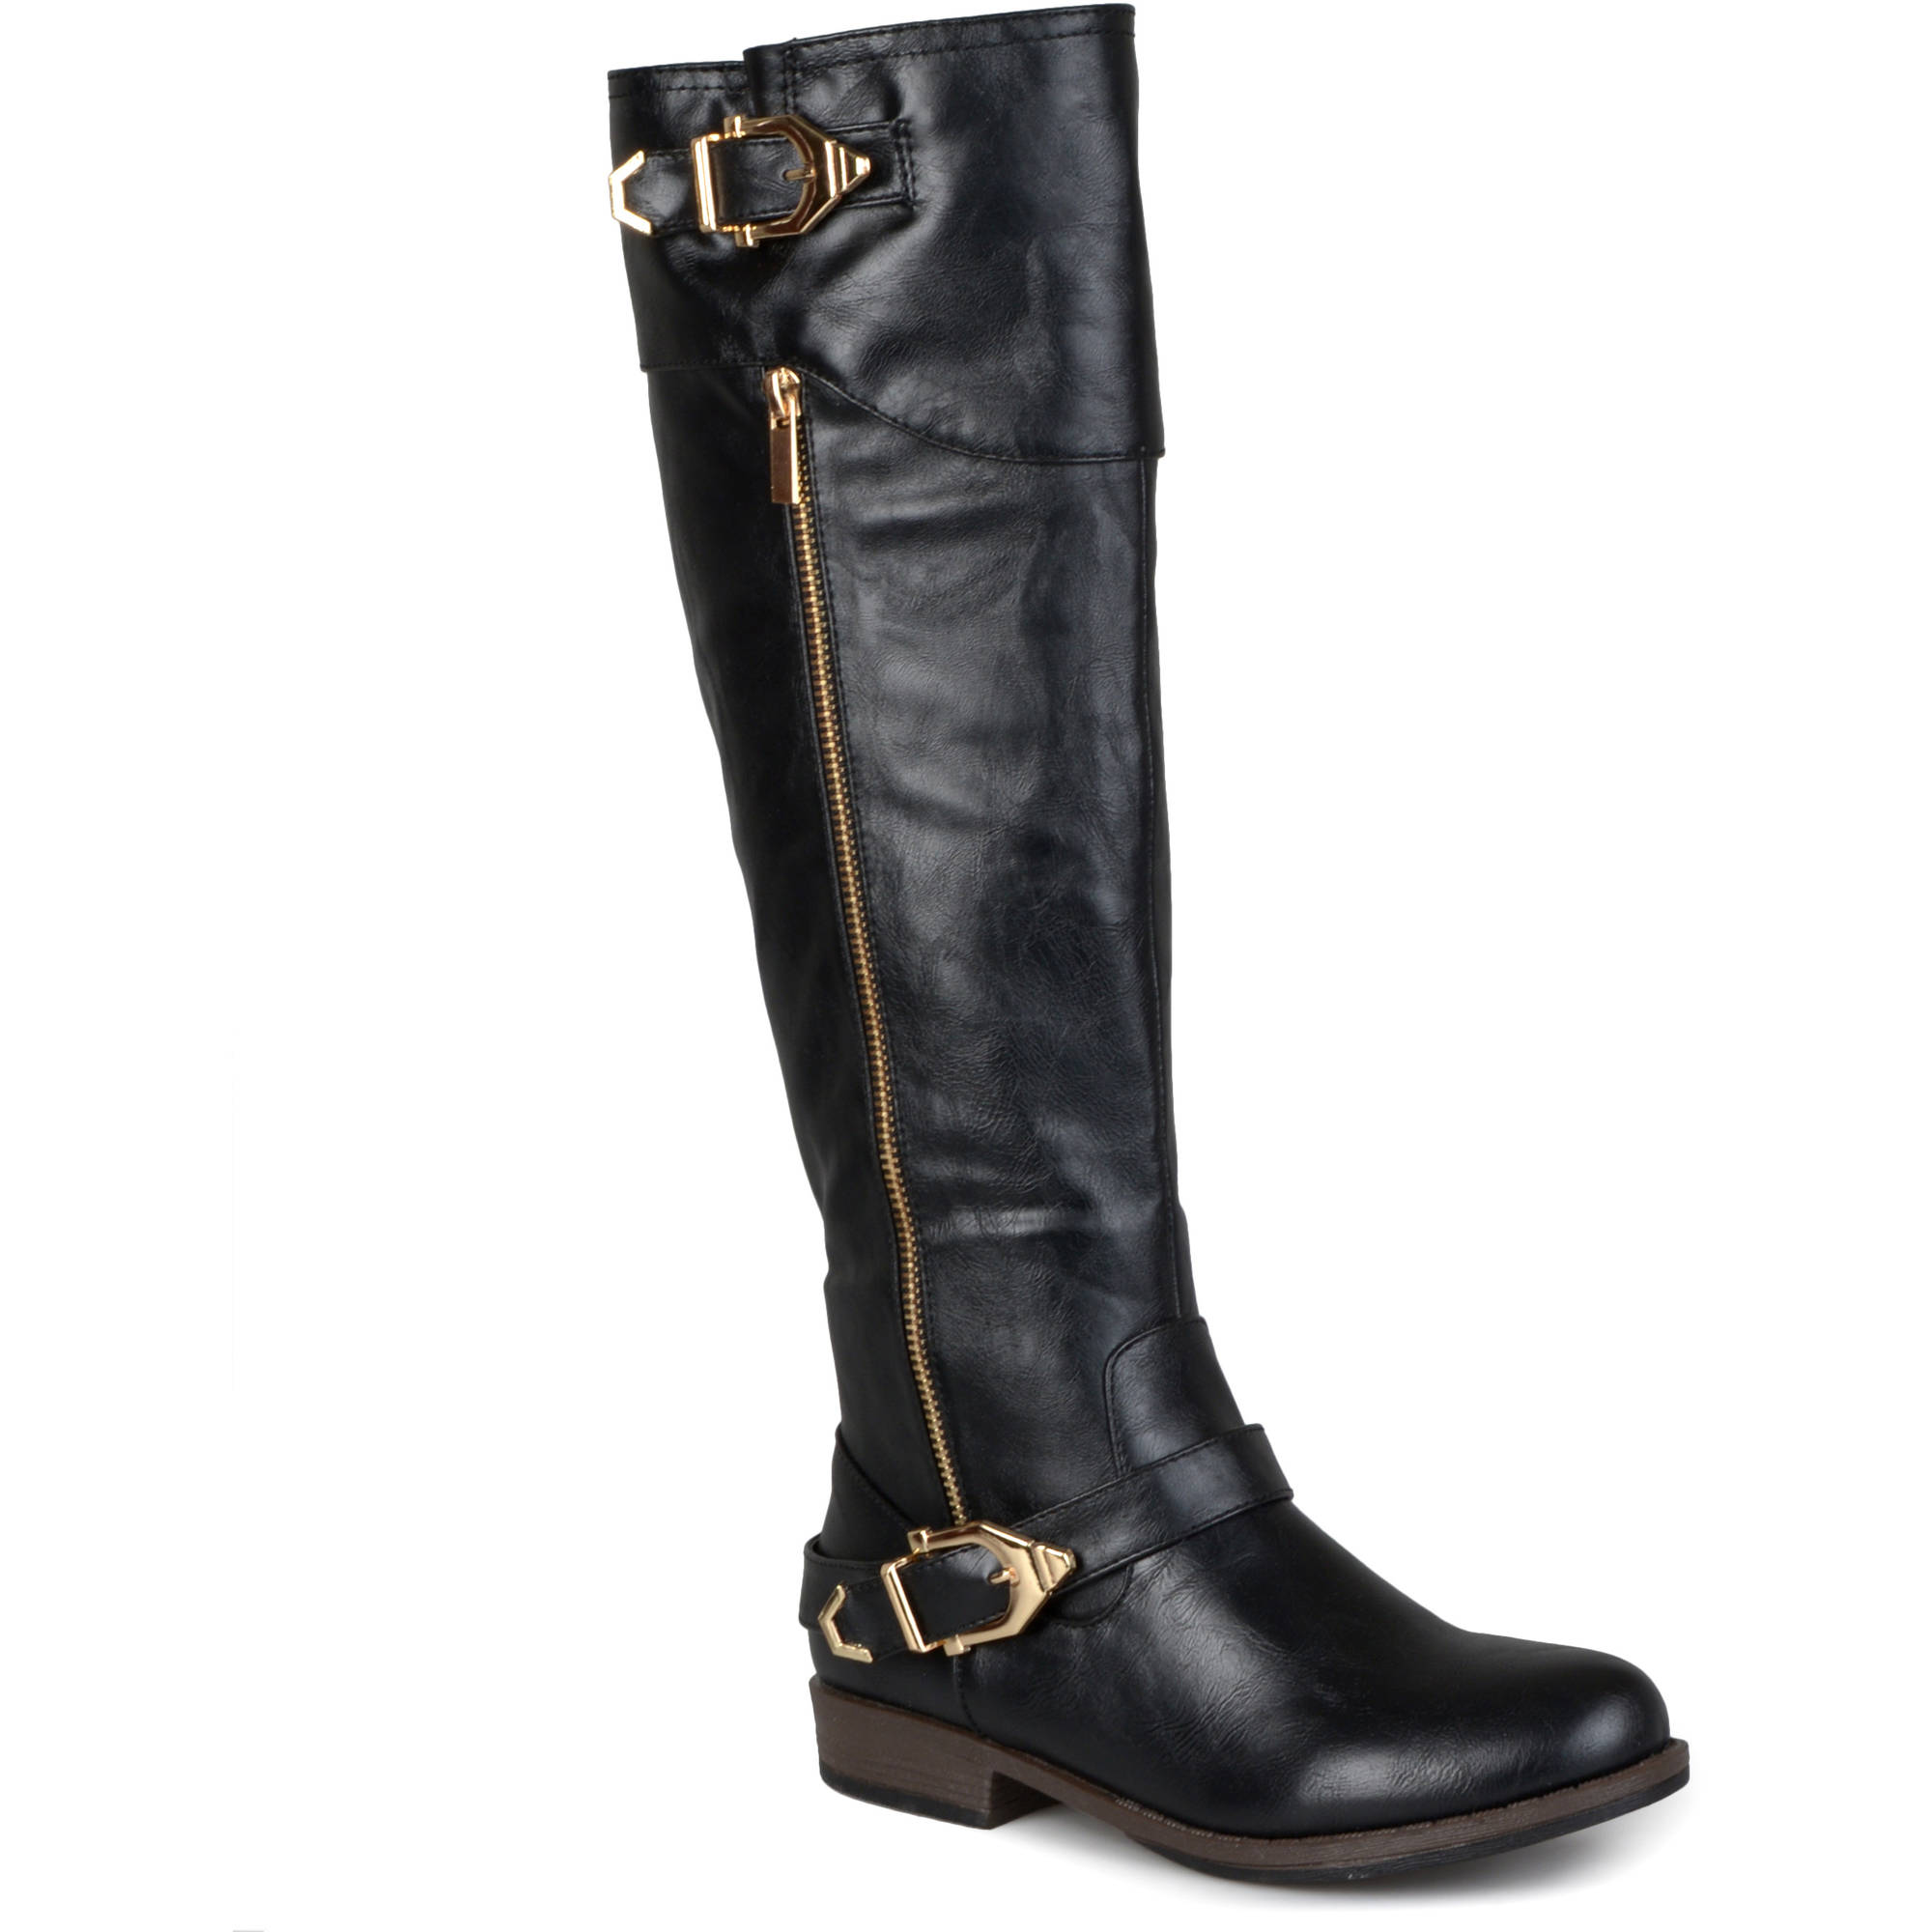 Womens Round Toe Buckle Detail Boots